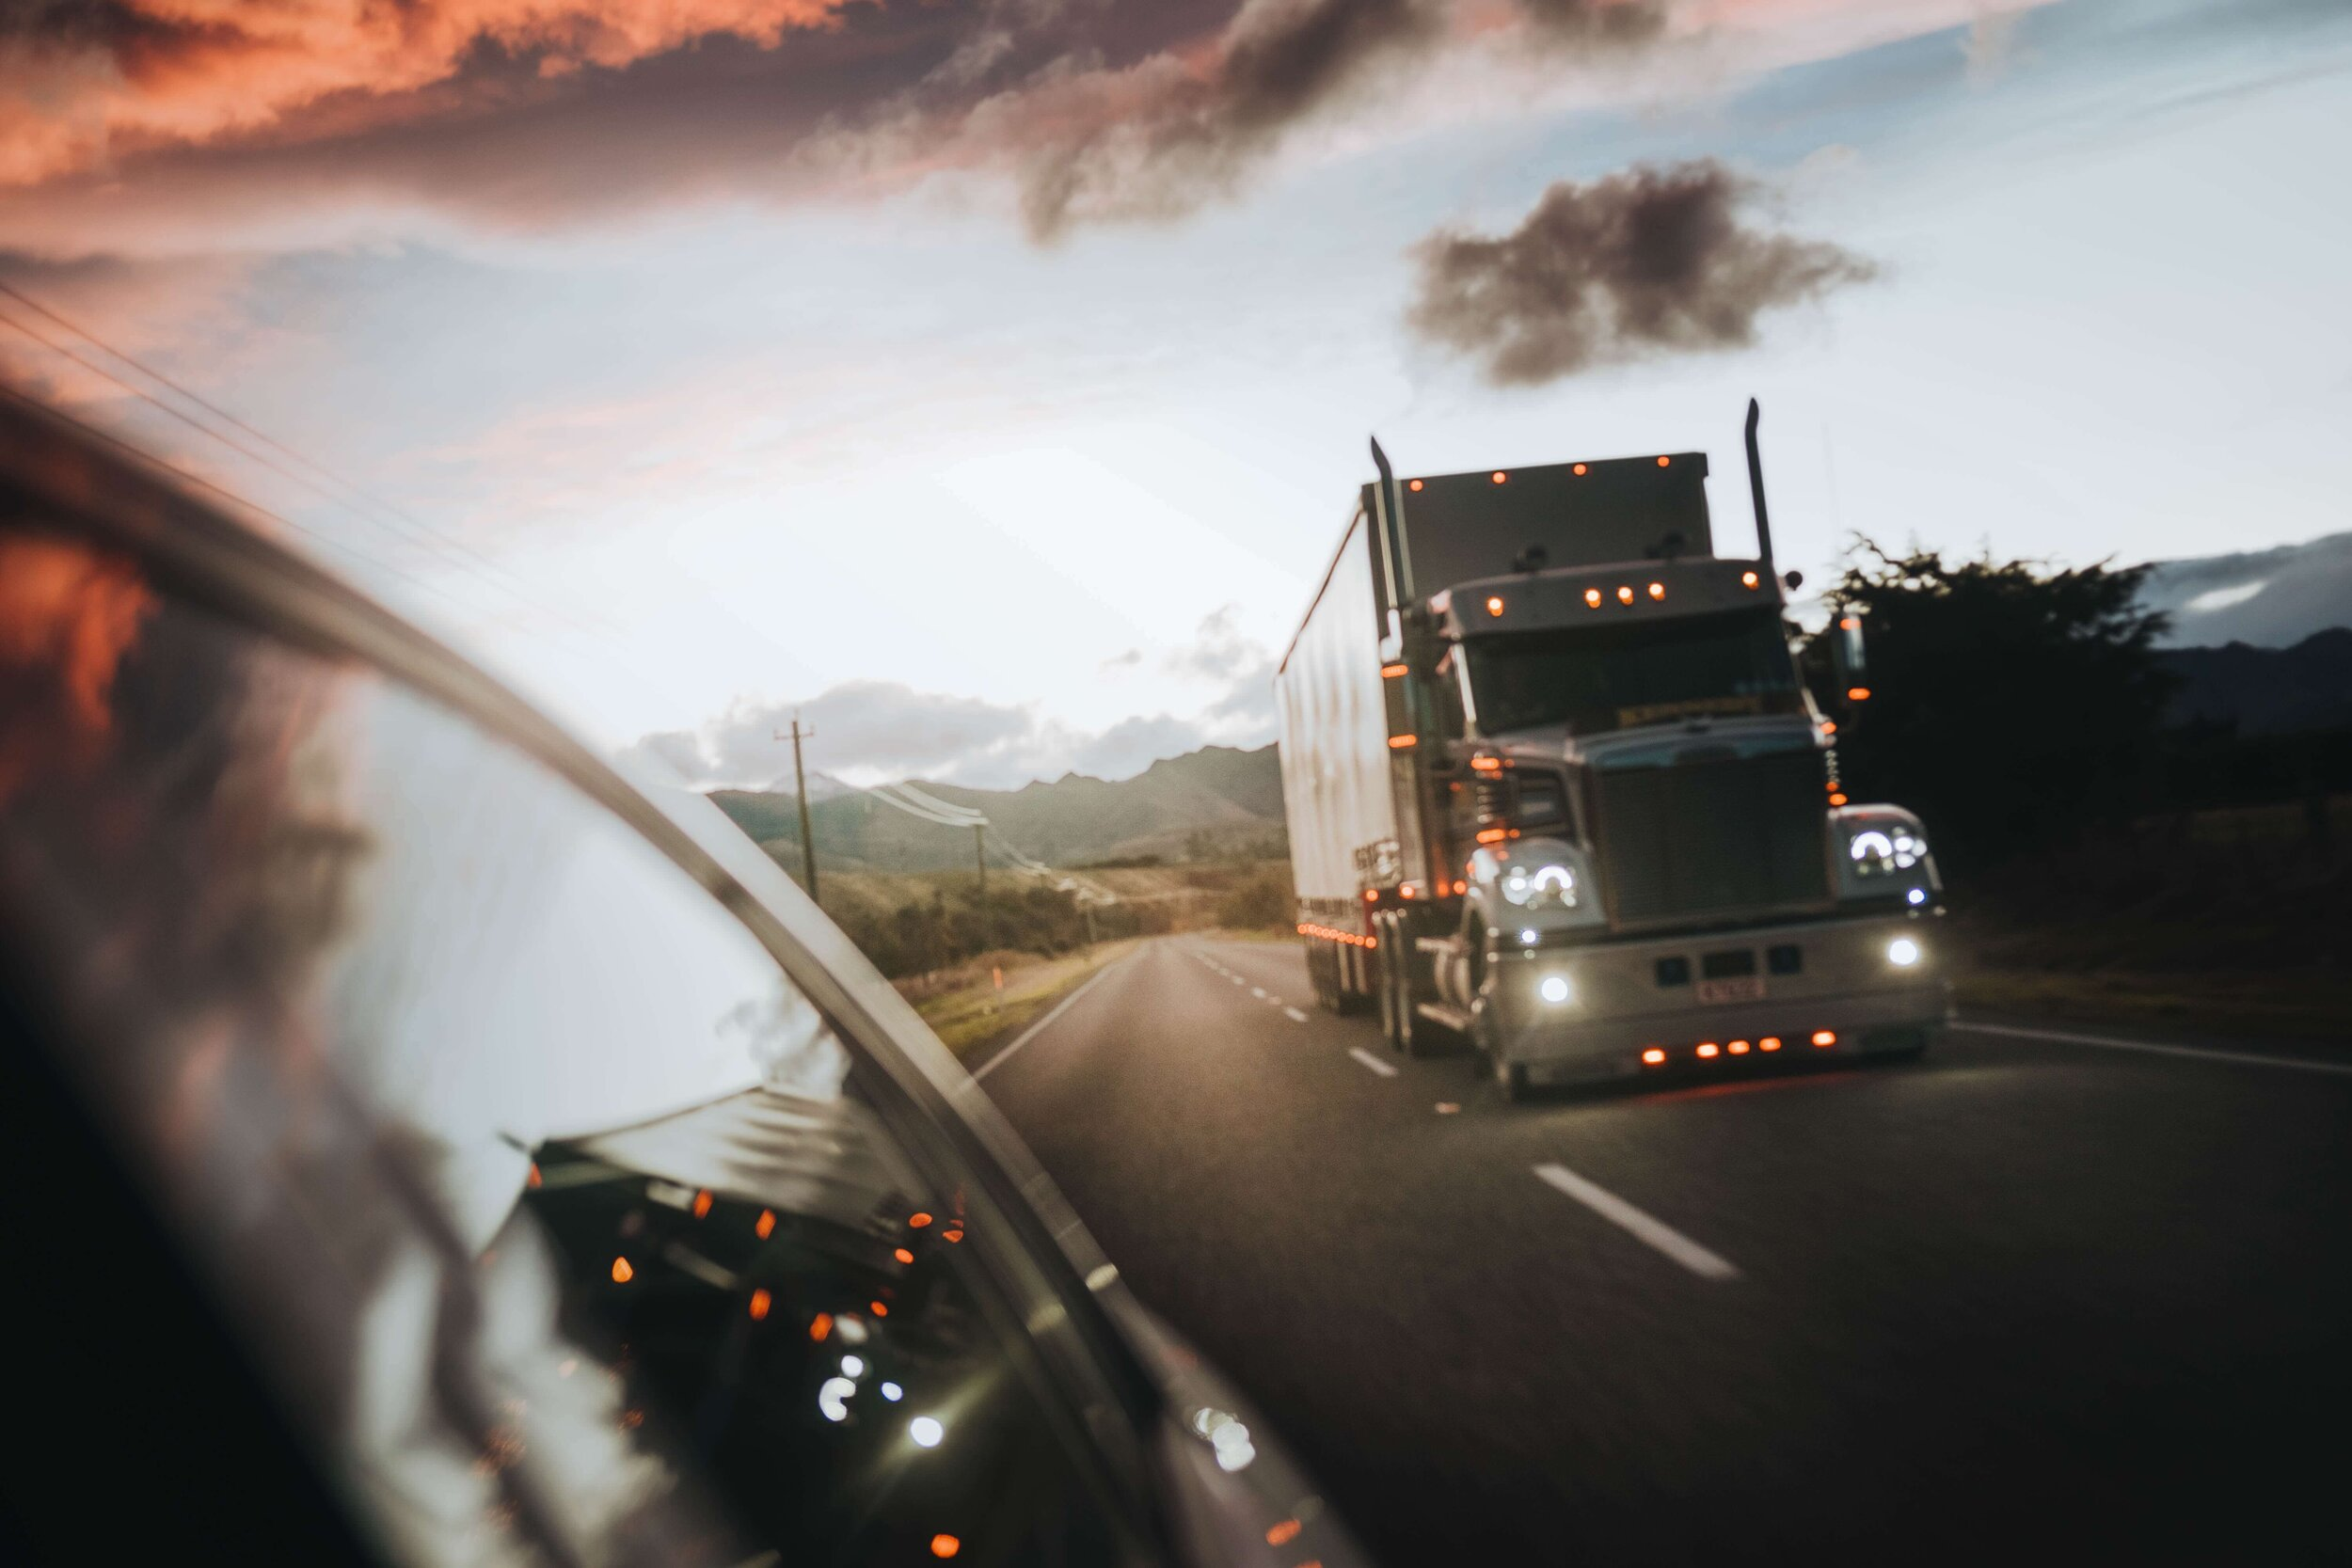 Linear programming is mathematics valuable for optimizing finances and planning. For example, linear programming can be used for fleet management.